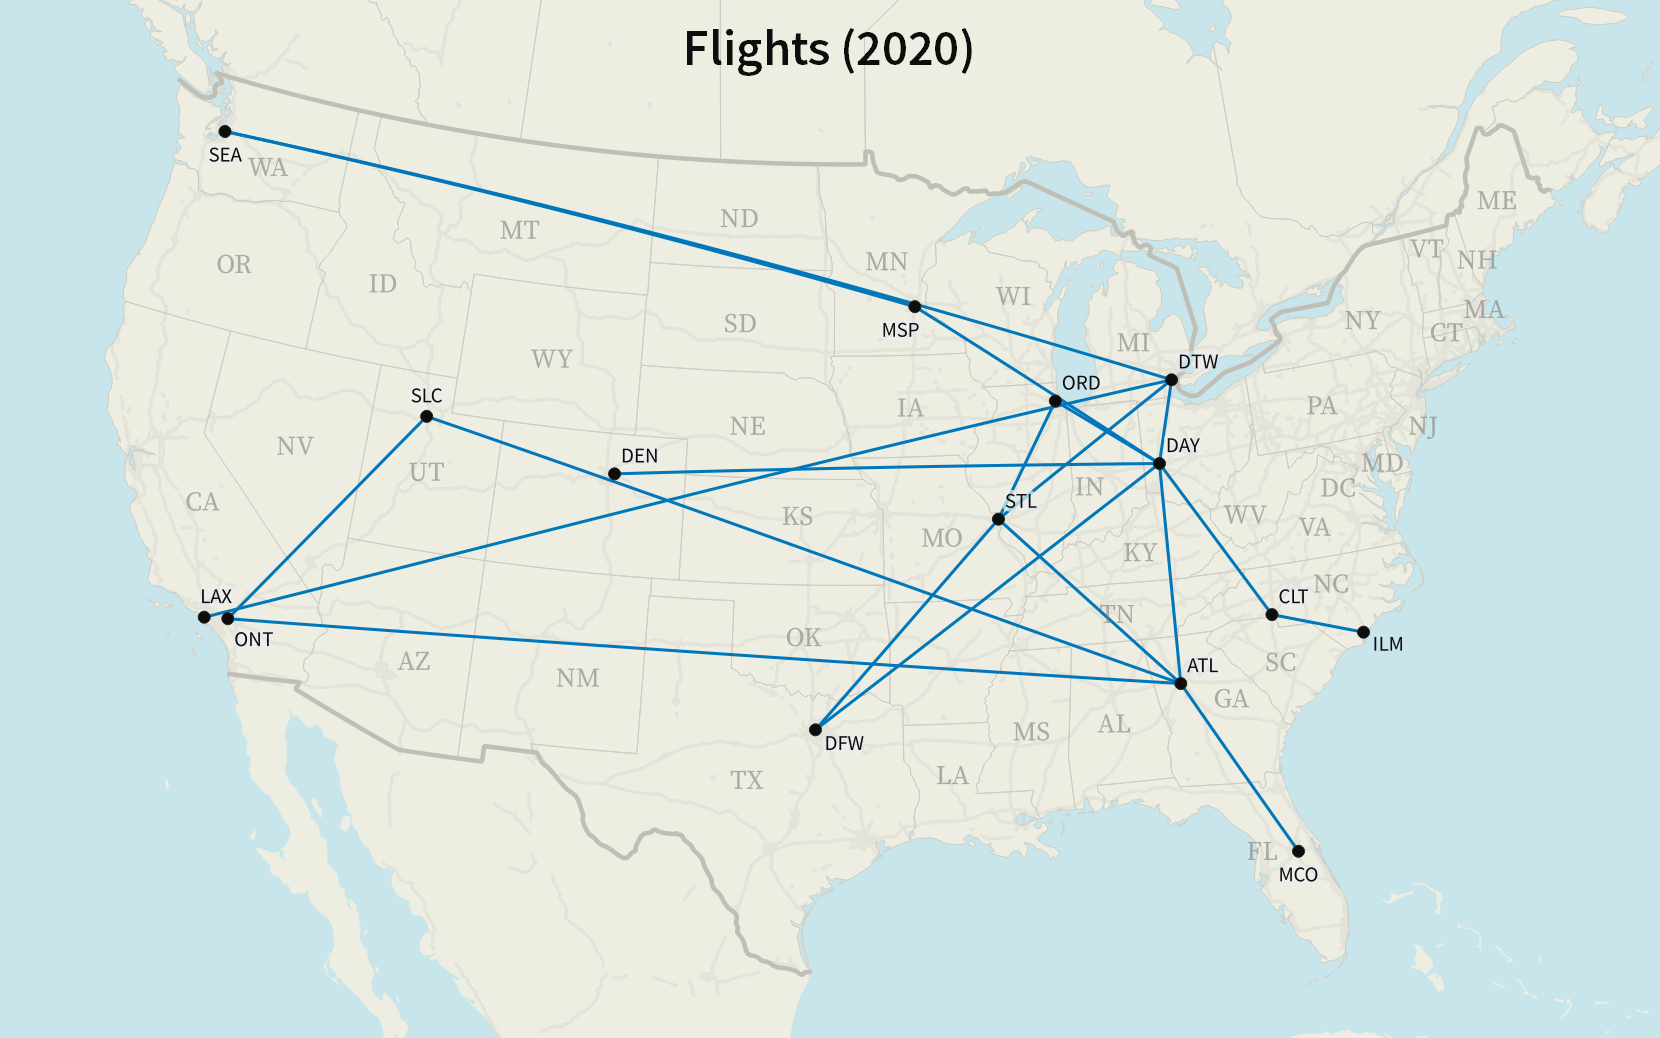 A map of all my flights in 2020.